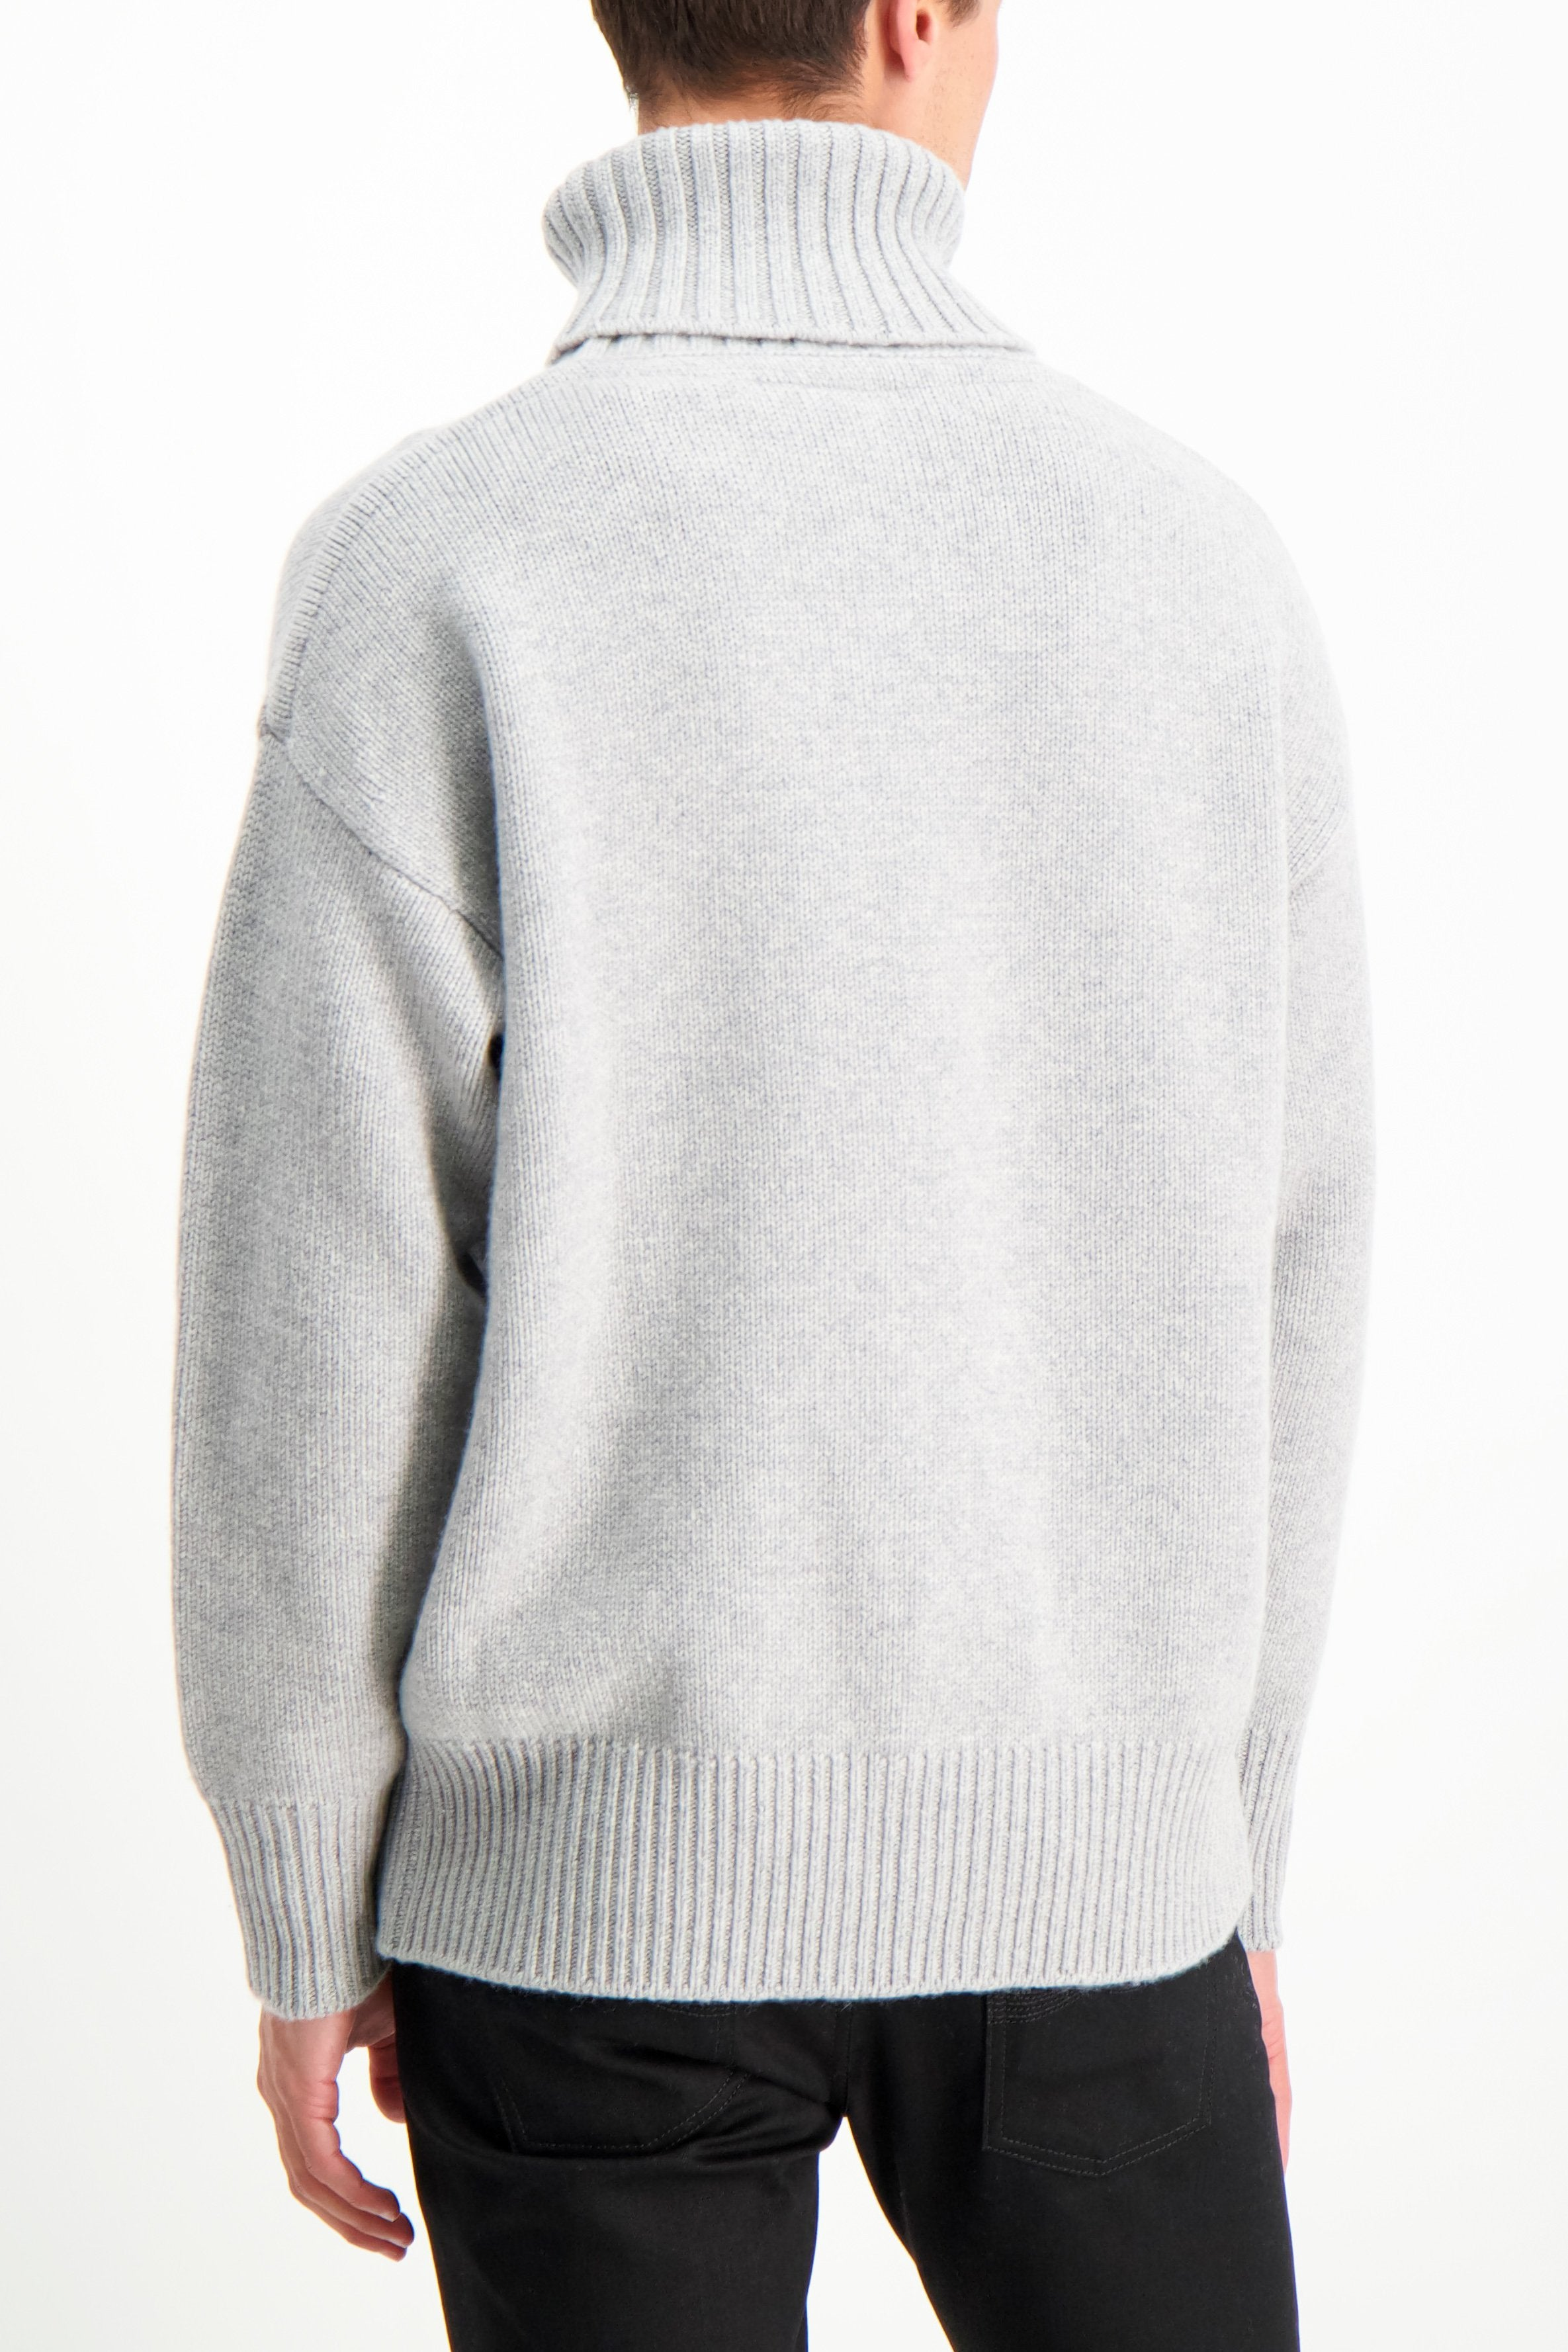 Back Crop Image Of Model Wearing Extreme Cashmere N°20 Oversize Xtra Sweater Grey